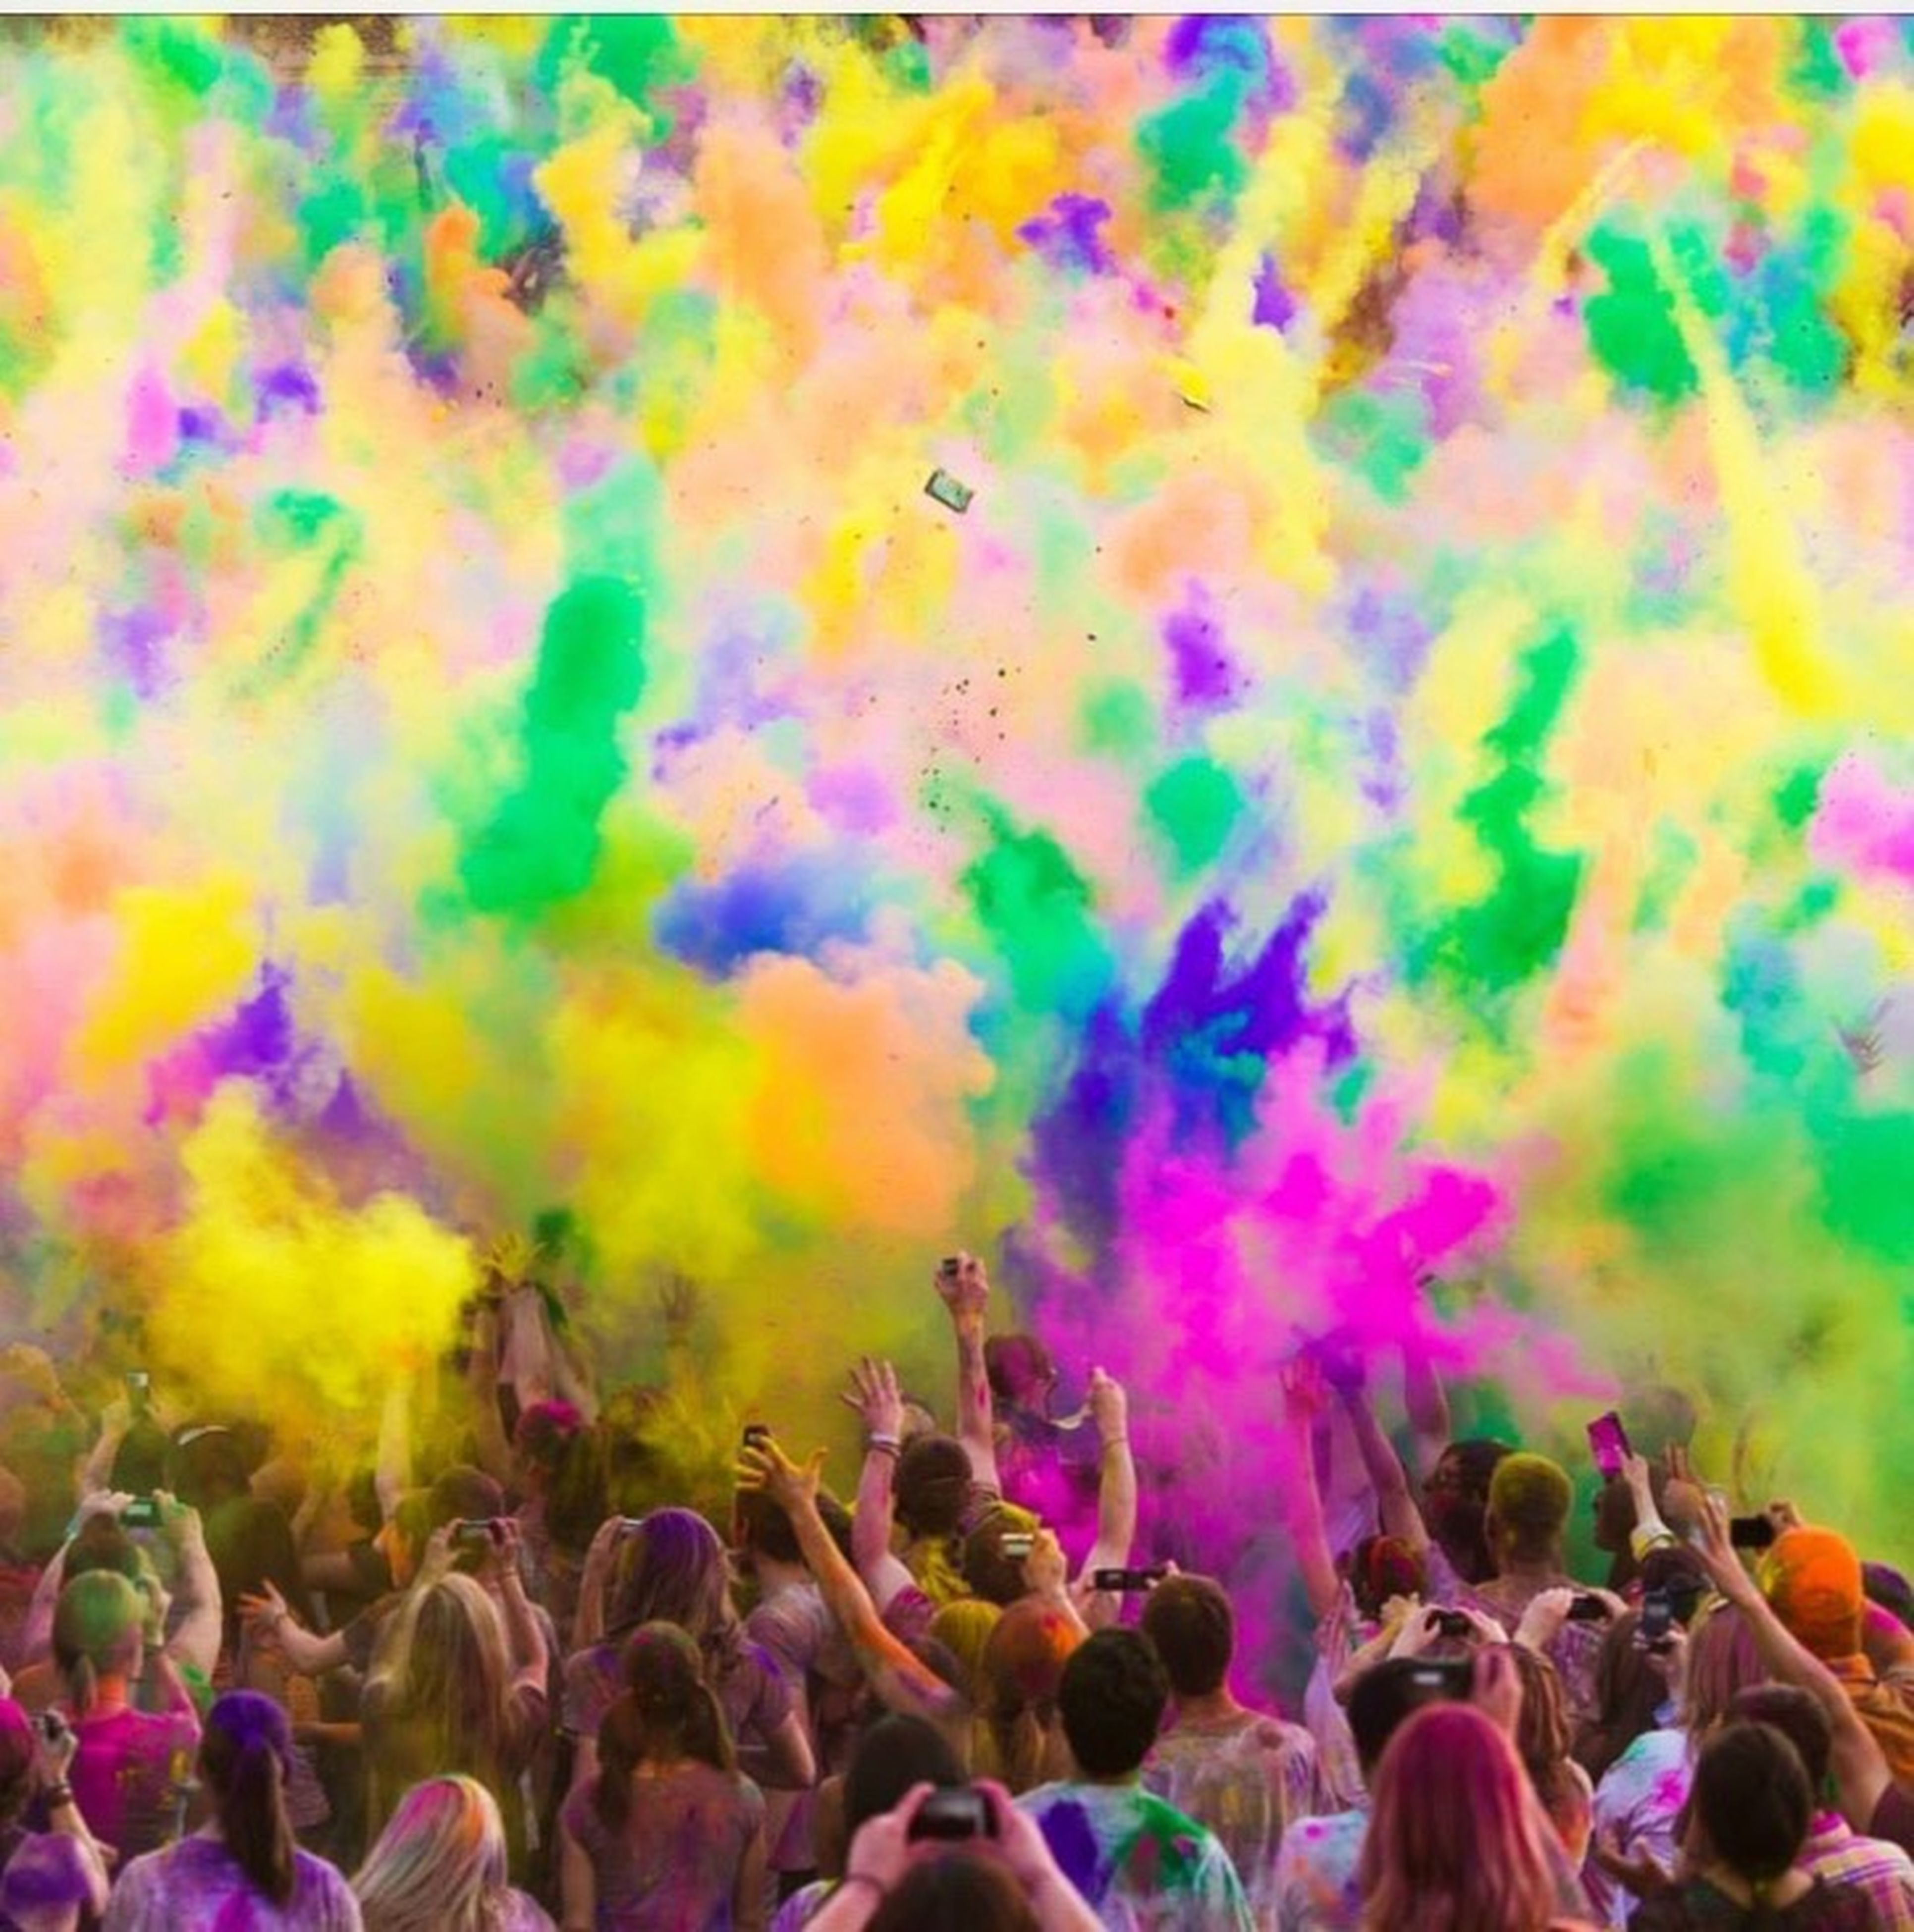 multi colored, arts culture and entertainment, large group of people, celebration, enjoyment, indoors, colorful, crowd, culture, lifestyles, person, backgrounds, skill, event, full frame, spraying, extreme sports, festival, performance, fun, hobbies, youth culture, celebration event